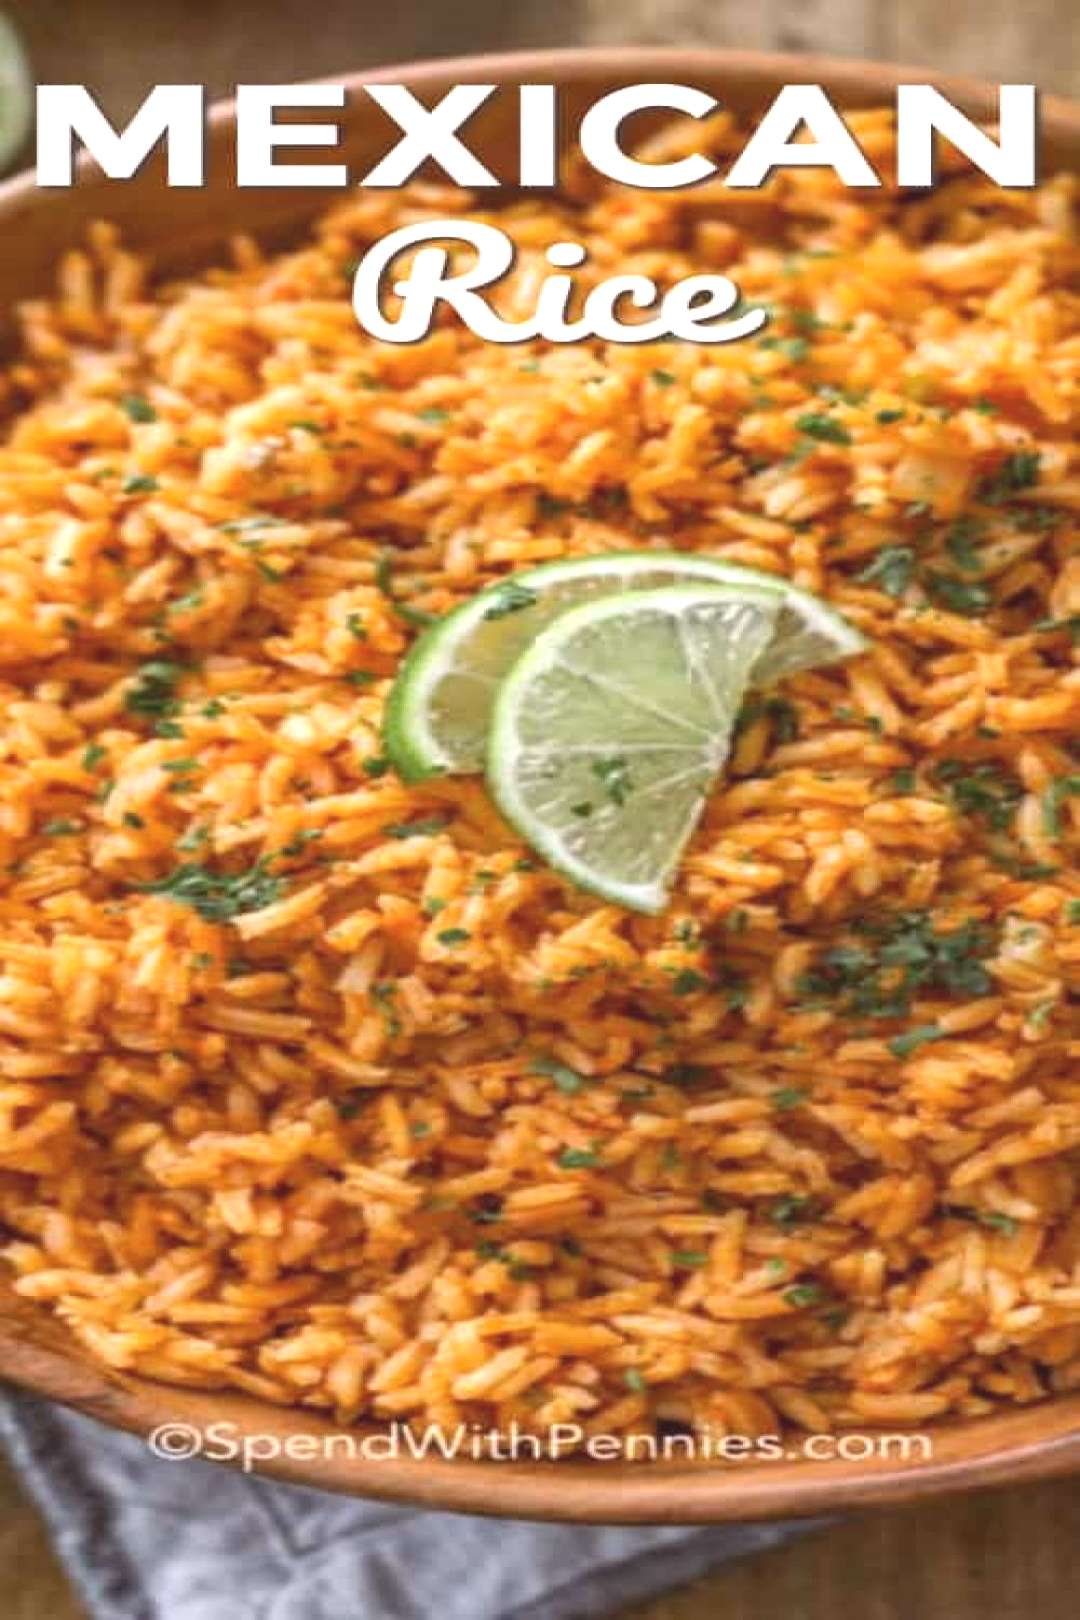 Mexican Rice - Spend With Pennies#mexican